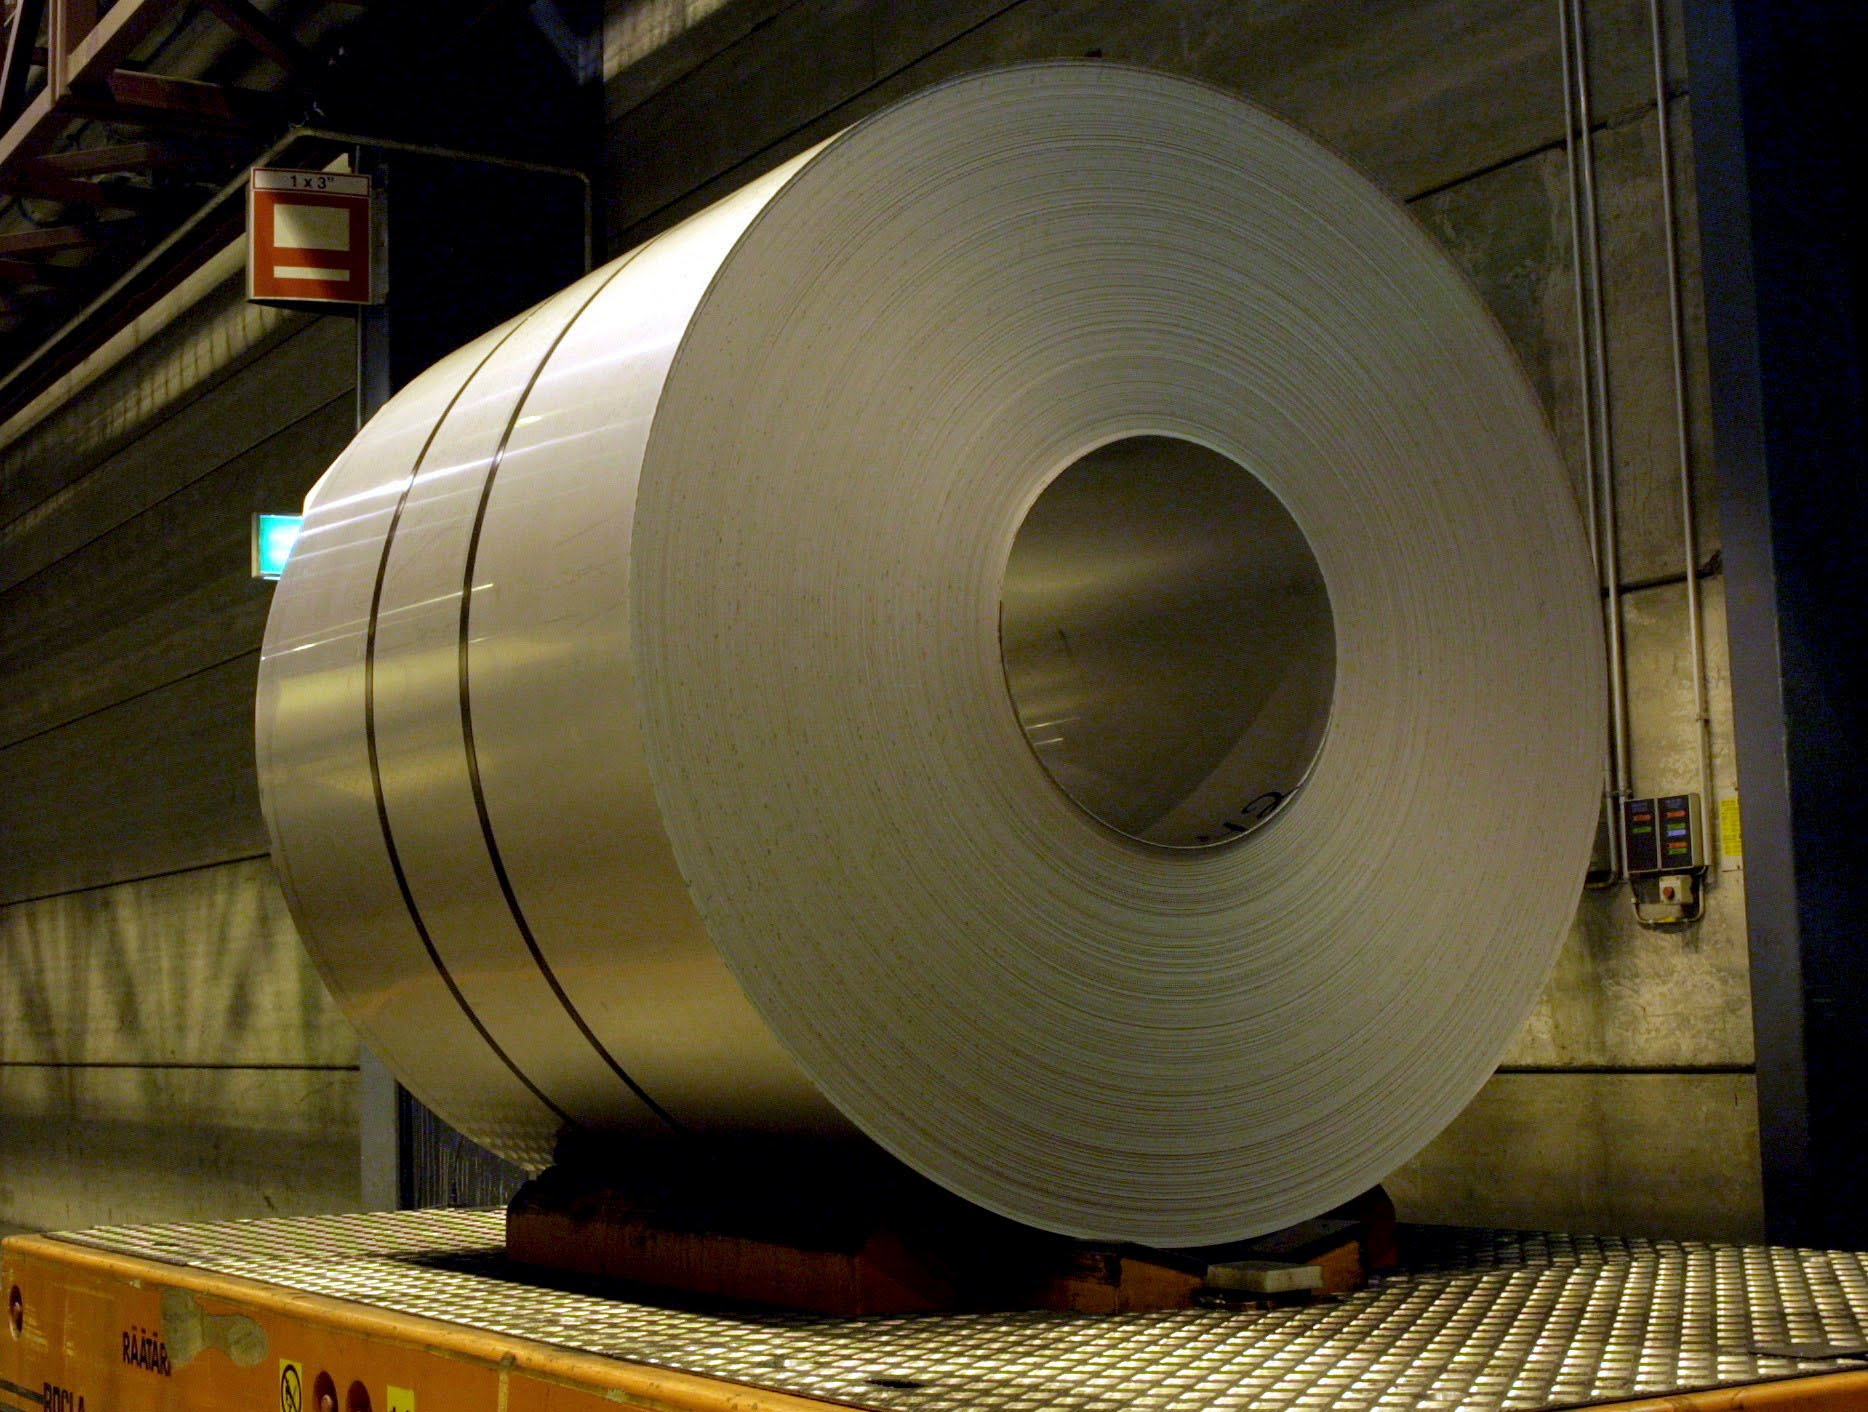 Stainless Steel Exporter Of Galvanized Coils And Sheets